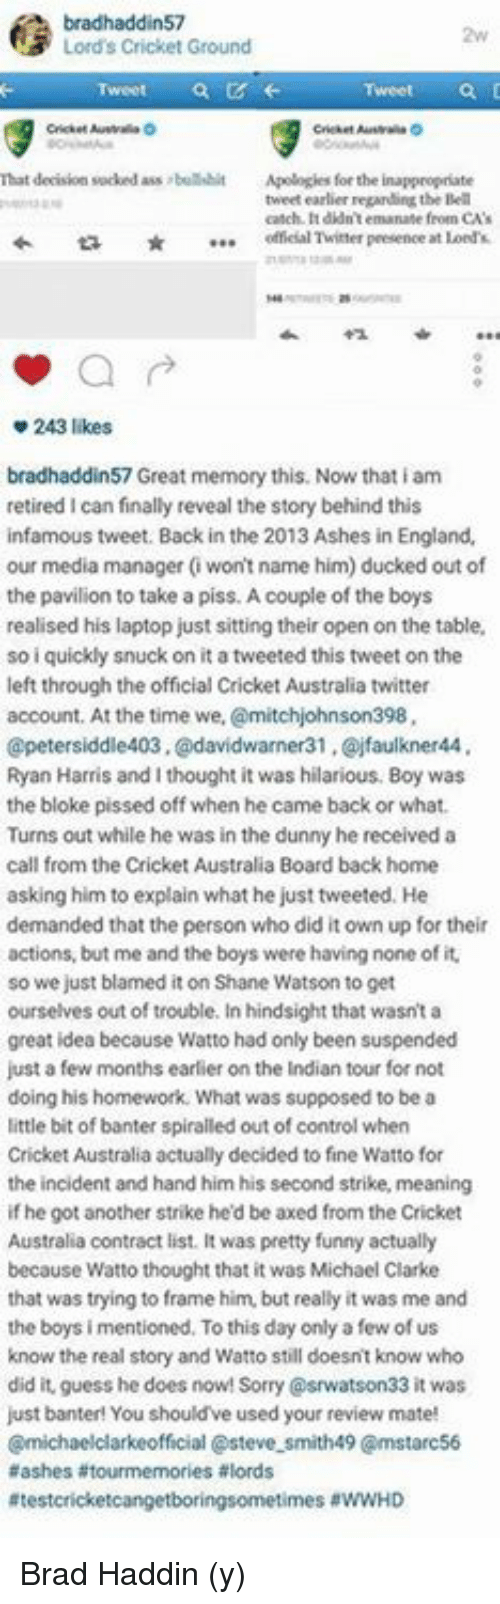 Ass, England, and Funny: bradhaddin57  N3 Lord's Cricket Ground  That decision sucked ass bullshit  Apologies for the inappropriate  tweet earlier regarding the Bell  catch. didn't emanate feoen CA's  offeial Twitter presence  at Lord  243 likes  bradhaddin57 Great memory this. Now that iam  retired I can finally reveal the story behind this  infamous tweet. Back in the 2013 Ashes in England.  our media manager (won't name him) ducked out of  the pavilion to take a piss. Acouple of the boys  realised his laptop just sitting their open on the table,  so i quickly snuck on it atweeted this tweet on the  left through the official cricket Australia twitter  account. At the time we,  @mitchjohnson398,  petersiddle403.@davidwarner31 ,Qojfaulkner44  Ryan Harris and I thought it was hilarious. Boy was  the bloke pissed off when he came back or what.  Turns out while he was in the dunny hereceived a  call from the Cricket Australia Board back home  asking him to explain what he just tweeted. He  demanded that the person who did it own up fortheir  actions, but me and the boys were having none of it.  so we just blamed it on Shane Watson to get  ourselves out of trouble. In hindsight that wasn't a  great idea because Watto had only been suspended  just a few months earlier on the Indian tour for not  doing his homework. What was supposed to be a  little bit of banter spiralled out of control when  Cricket Australia actually decided to fine Watto for  the incident and hand him his second strike, meaning  if he got another strike he'd be axed from the Cricket  Australia contract list. It was pretty funny actually  because Watto thought that it was Michael Clarke  that was trying to frame him, but really it was me and  the boys i mentioned. To this day only a few of us  know the real story and Watto still doesnt know who  did it, guess he does now! 33 it was  just banter! You should've used your review mate!  Cmichaelclarkeofficial asteve smith49 Cmstarc56  aashes tourmemories alords  Atestcricketcangetboringsometimes aWWHD Brad Haddin (y)